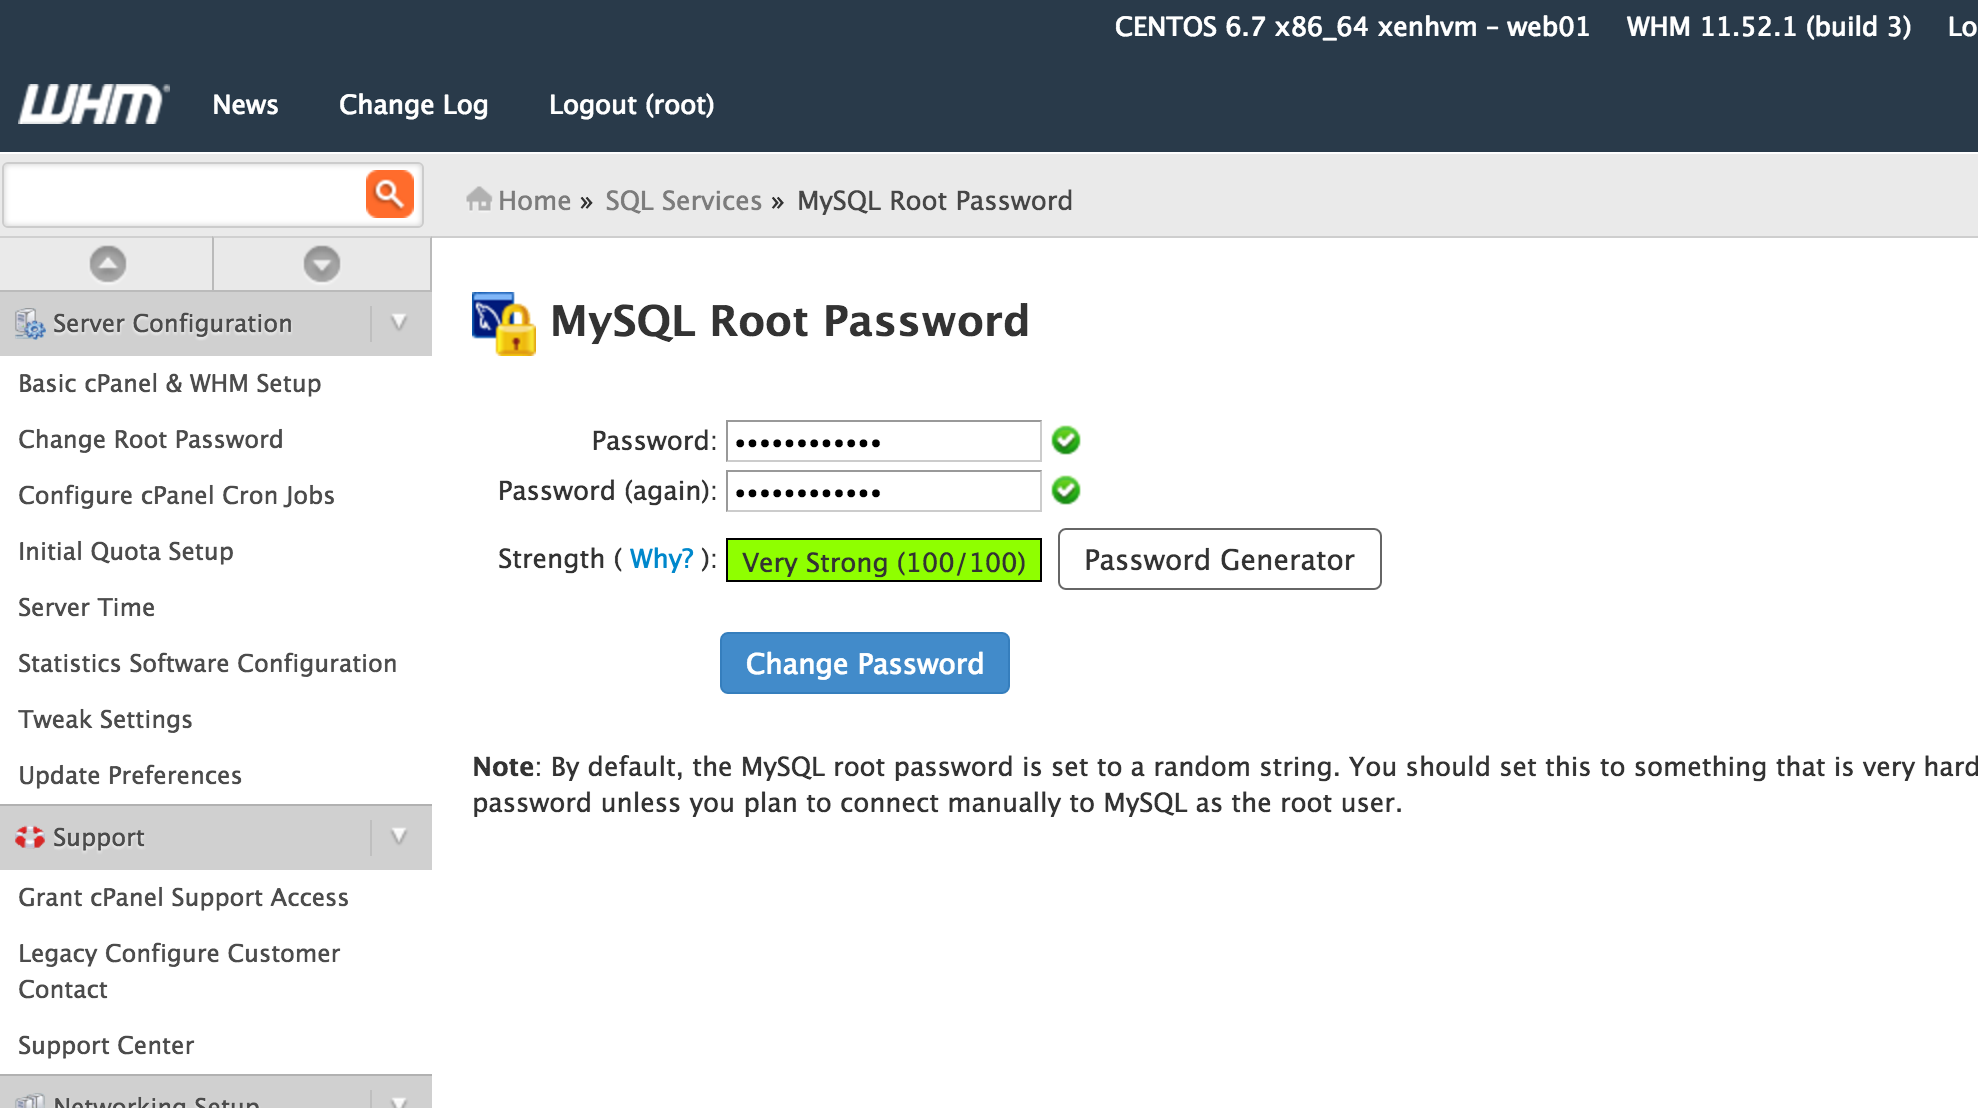 How to reset the root password in linux centos